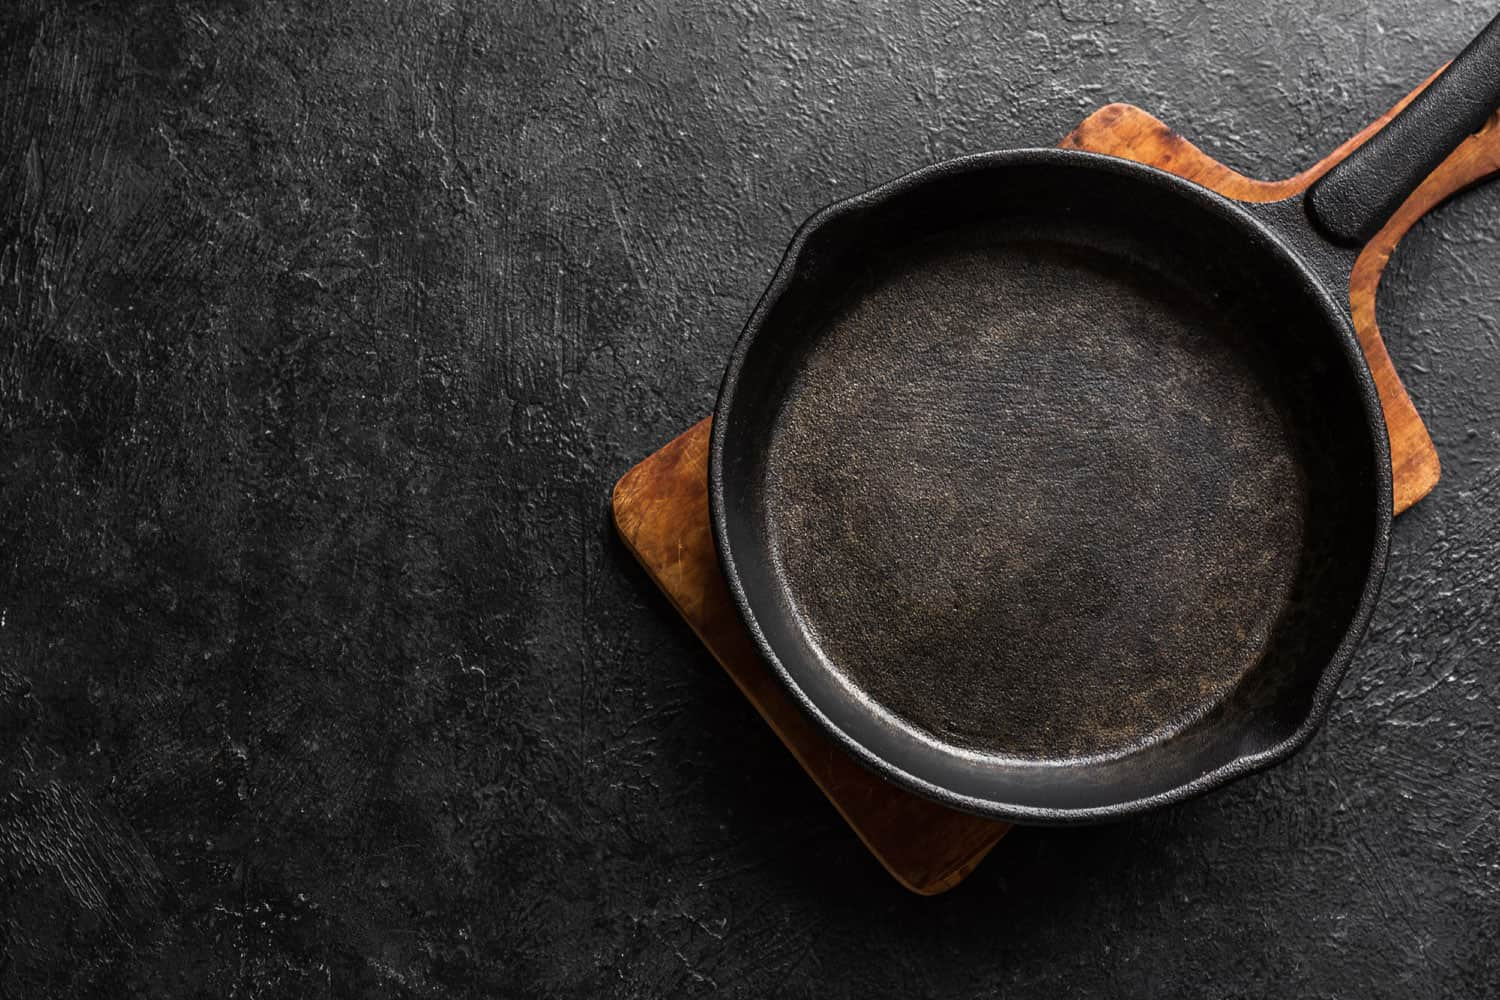 A newly washed skillet placed on top of a wooden cutting board, 6 Of The Best Ovenproof Skillets